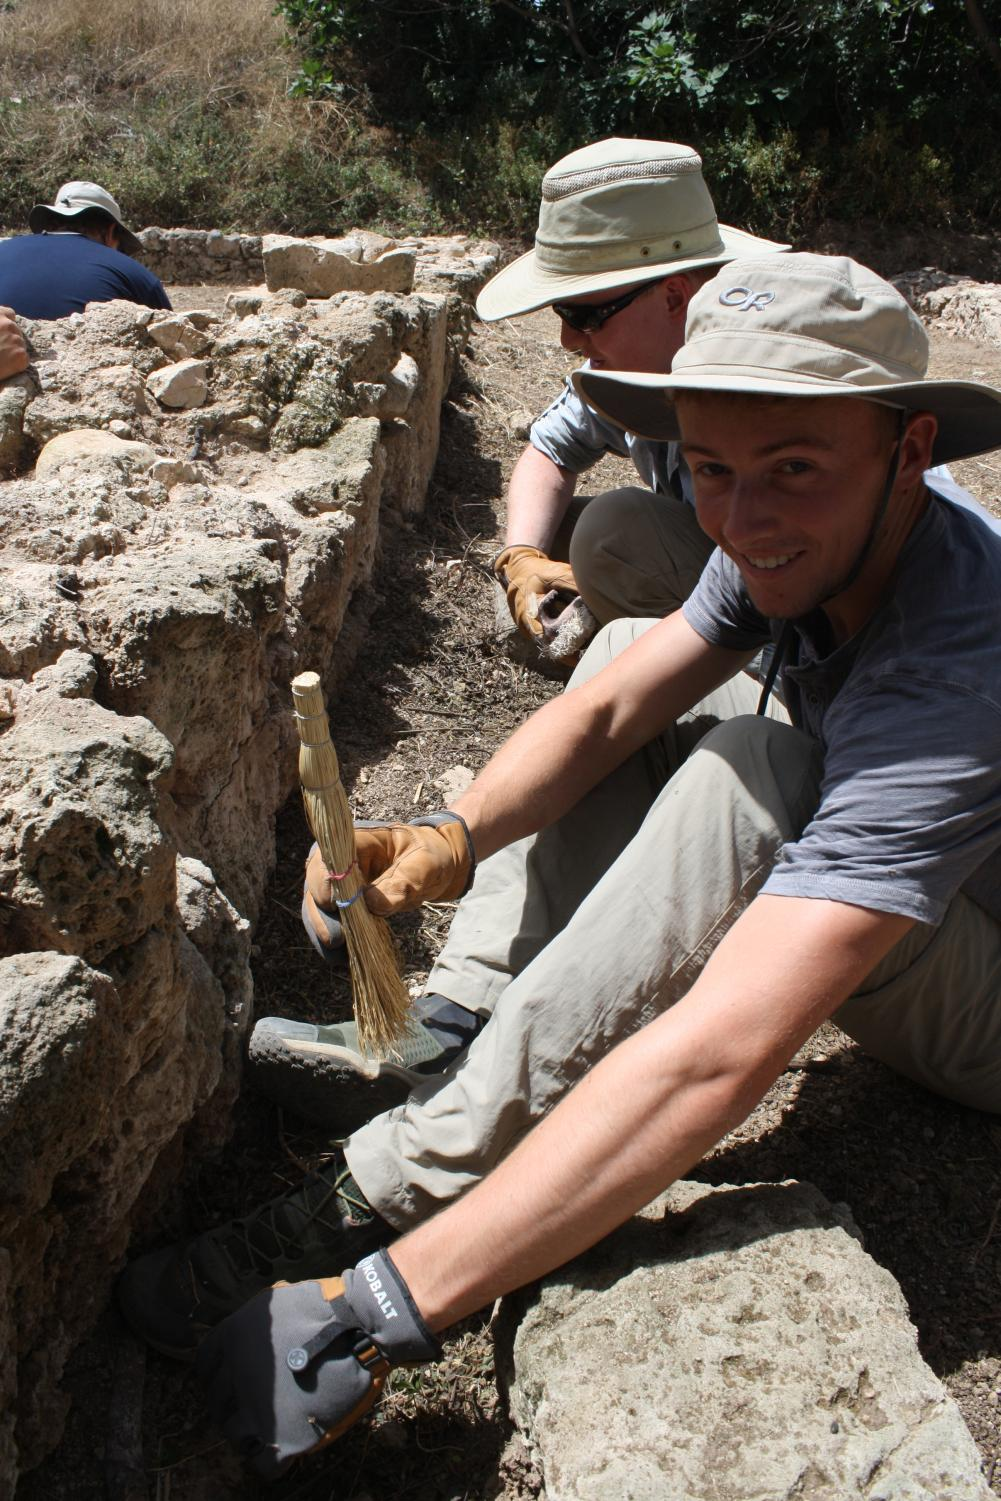 Chad Villhauer ('18) at an excavation in Greece.